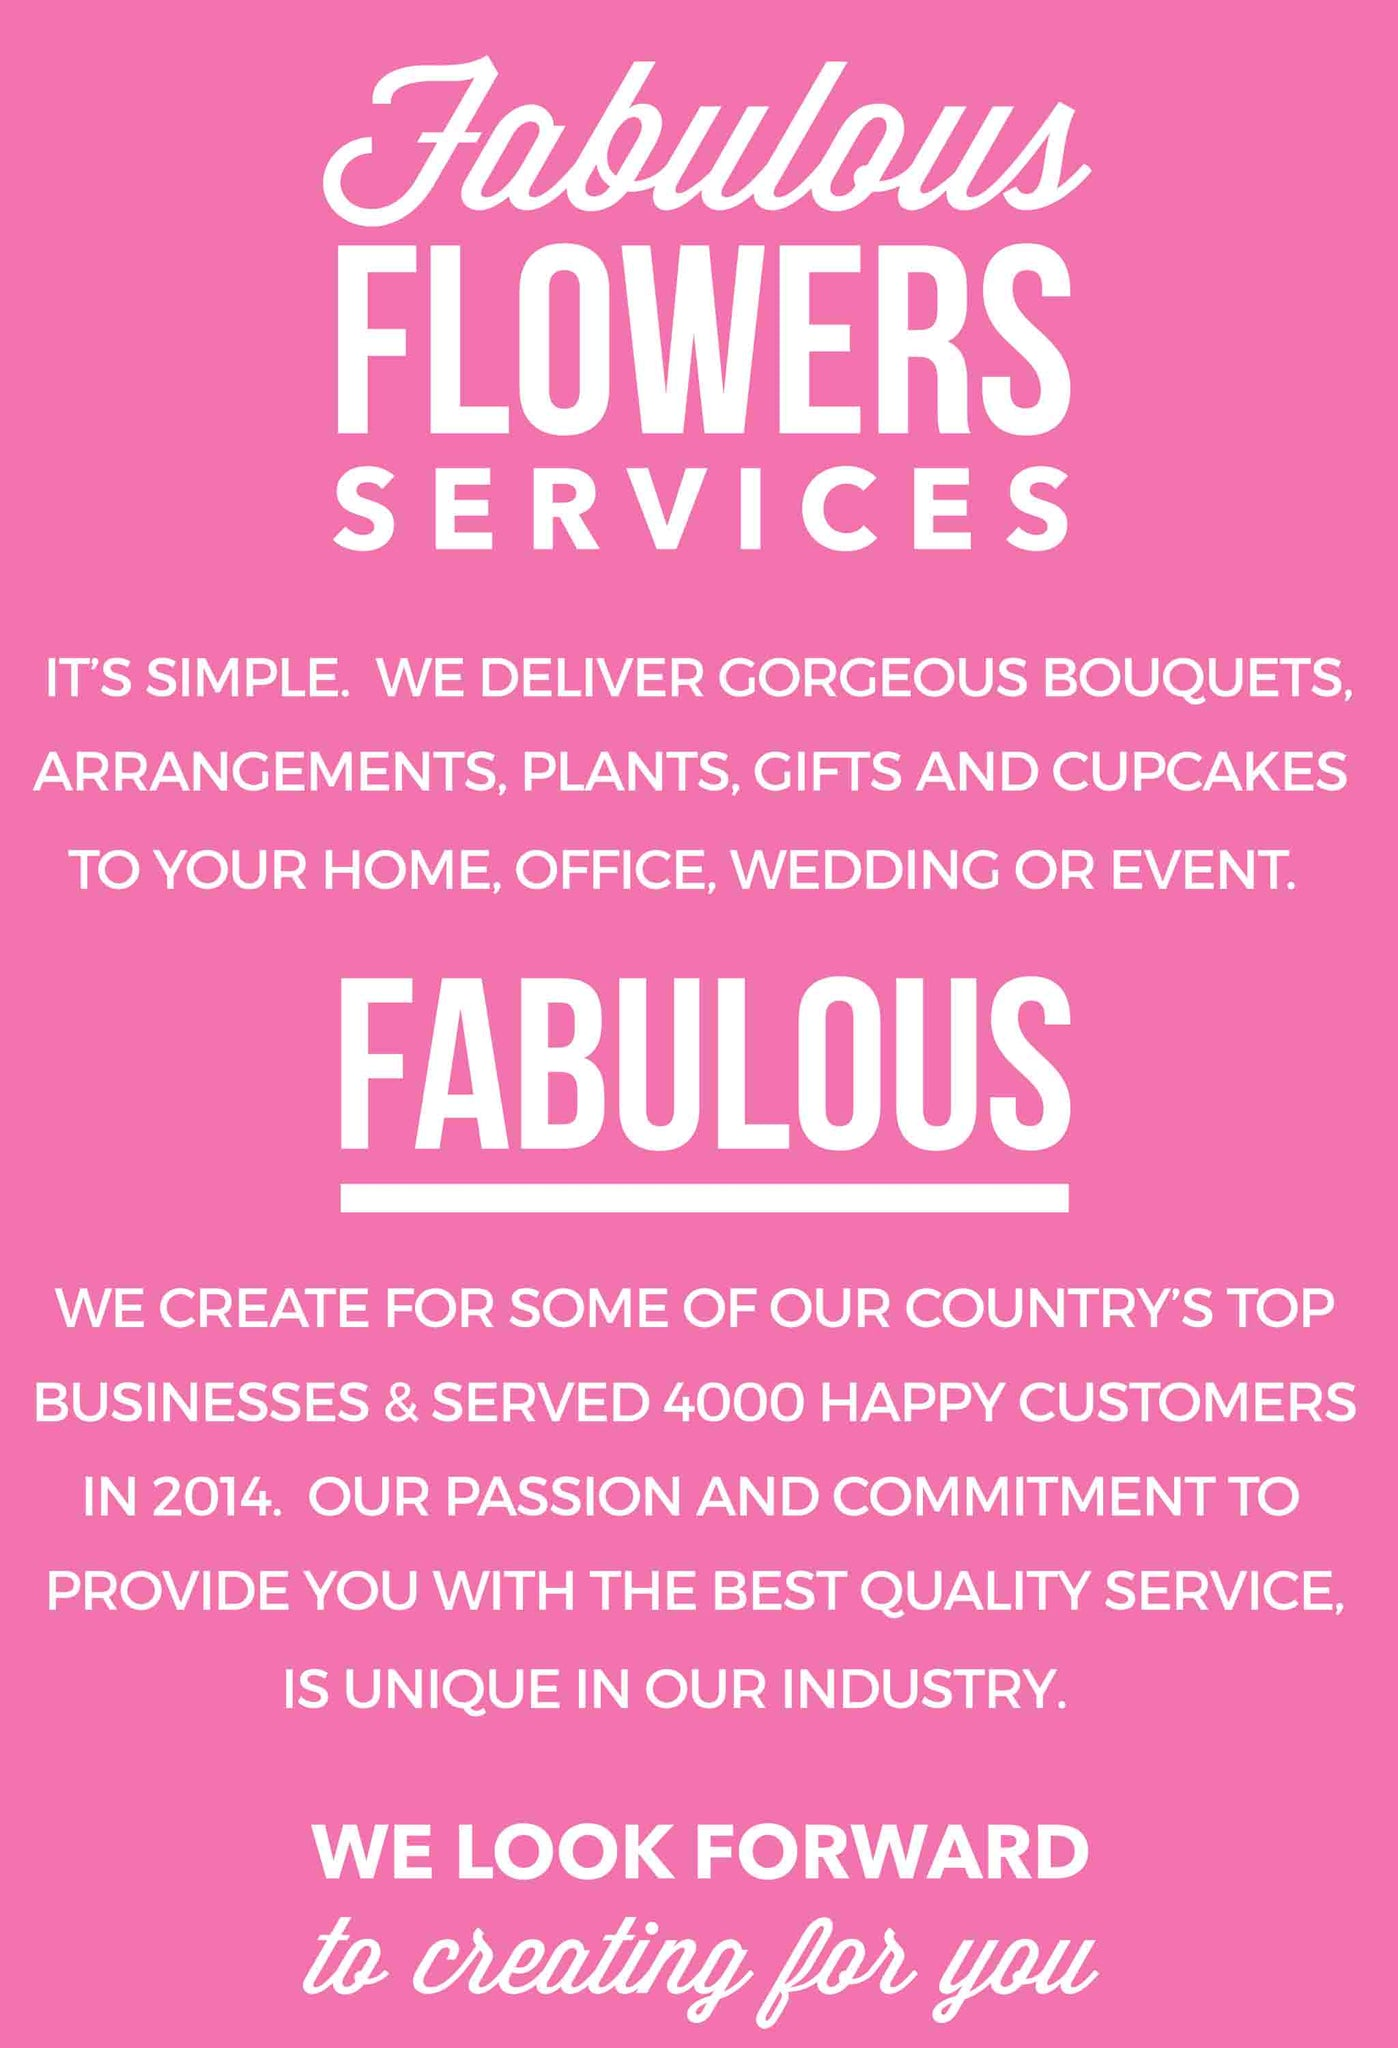 Internet Florist - Online Florist - Order Flowers Online. Fabulous Flowers - flowers delivered Cape Town. Online florist, flowers online, order flowers online, flower arrangements online, bouquets online, gifts online. fabulous flowers cavendish florist claremont cape town flower school the flowershop wedding flowers florist nearby beautiful wedding arches flower arrangements cape town flower bouquets near me flowers kenilworth florist the flower shop florest delivery flower delivery near me claremont flower delivery wedding arch florist bouquets florist hout bay flower store fabulous flowers cape town wedding bouquets cape town florist kenilworth flowers cape town wedding flowers cape town florist cape town cbd flower cape town florist in claremont cape town florist southern suburbs flowers kenilworth flowers claremont nearest florist cape town flower wedding florist cape town flower deliveries cape town cape town flowers flower shops cape town florists claremont send flowers to cape town flowers cape town delivery cape town florists send flowers cape town bridal bouquets cape town online florist cape town orchid mist flowers shop near me flowers on flowers flowers near me square flowers pretty arch cape town flower delivery flower delivery cape town florist near me flower shop in cape town www.fabulous florist delivery cape town online florists cape town florists cape town florists in claremont florist cape town flowers in cape town cape town florist flower shop cape town flowers online cape town flower shops in cape town wedding bouquet florist in cape town cbd flower shops florist in cape town fabulousflowers best florist nearest flower shop purple plant pot wedding bouqet nearest florist shop cavendish the cape town florist florist claremont flower delivery service cape town wedding florists cape town florist cape town delivery flowers for wedding florists in cape town flower delivery in cape town floral wedding arch cost flower shop near me